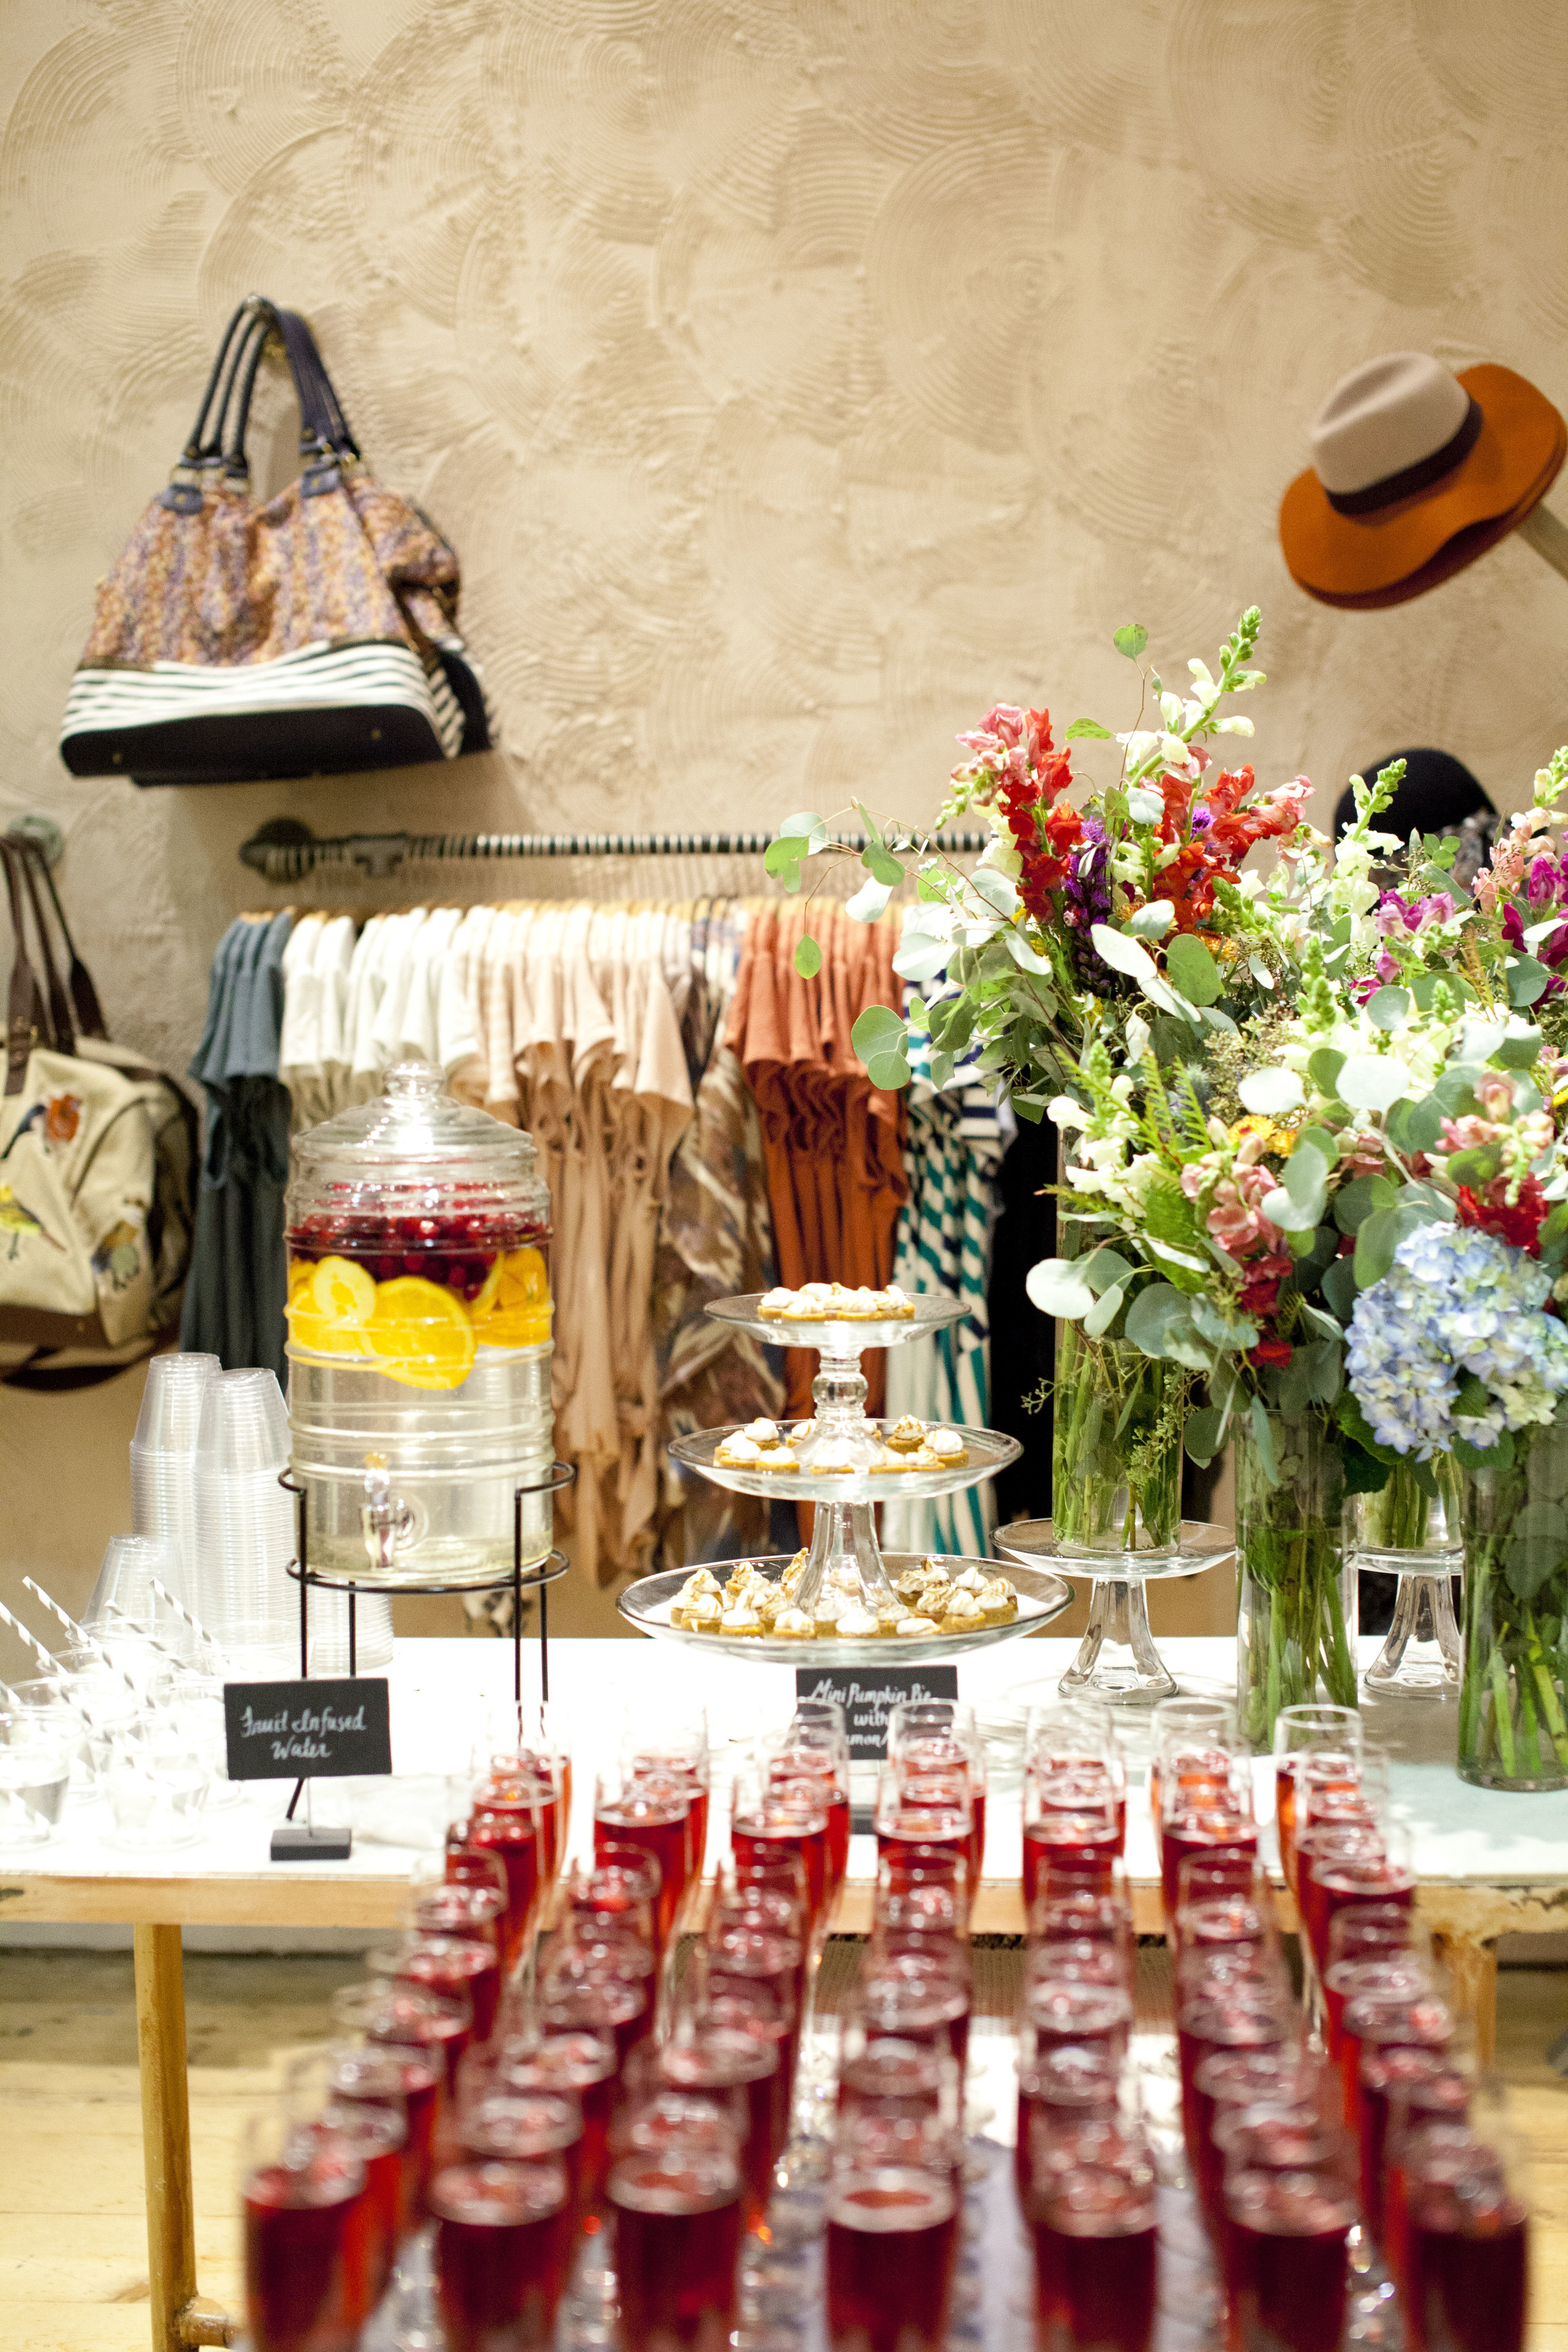 Anthropologie South Park Event September 2015 by Ariana Clare329.jpg